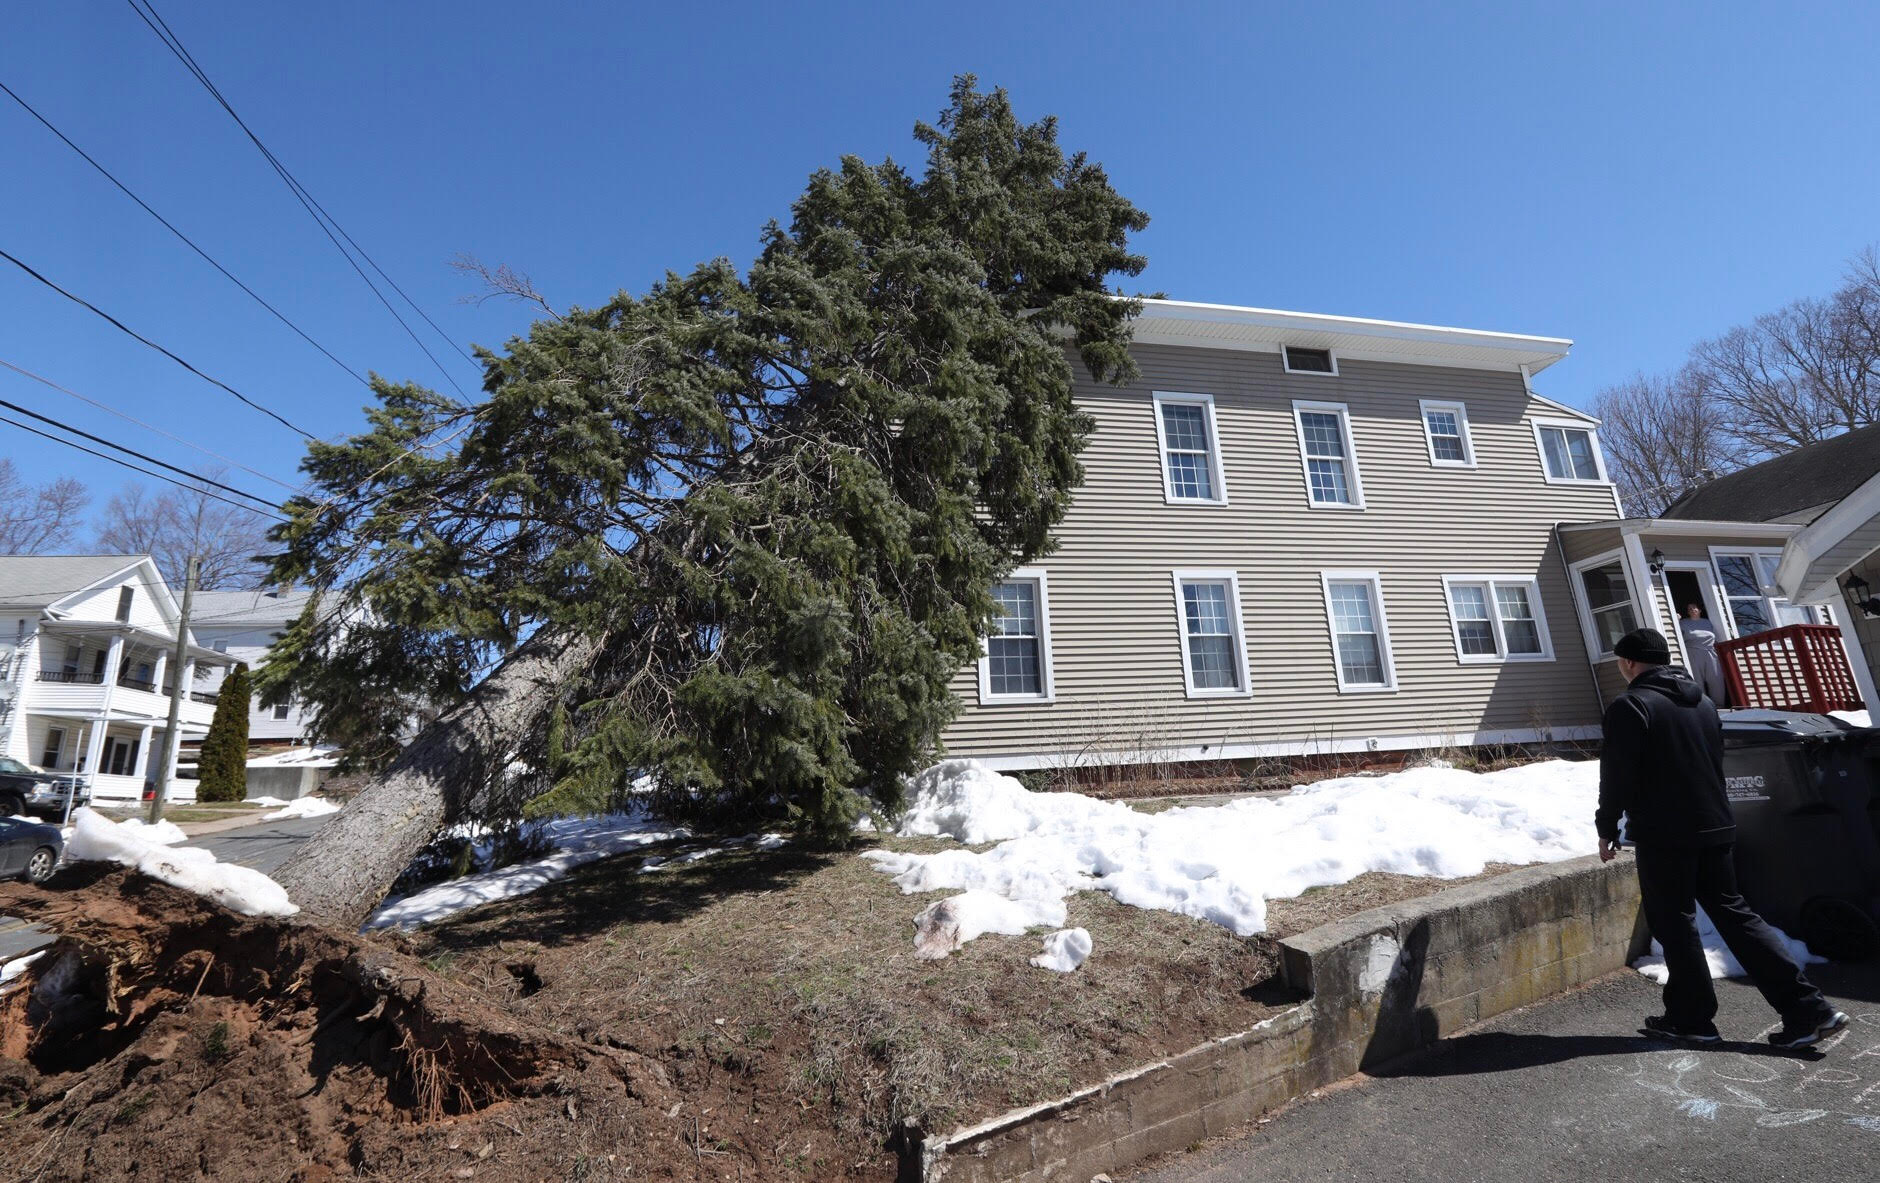 The owner of an apartment house at 42-44 Vermont Ave. in Southington, looks over the damage done by a fallen evergreen tree, Wednesday, March 22, 2017. | Dave Zajac, Record-Journal